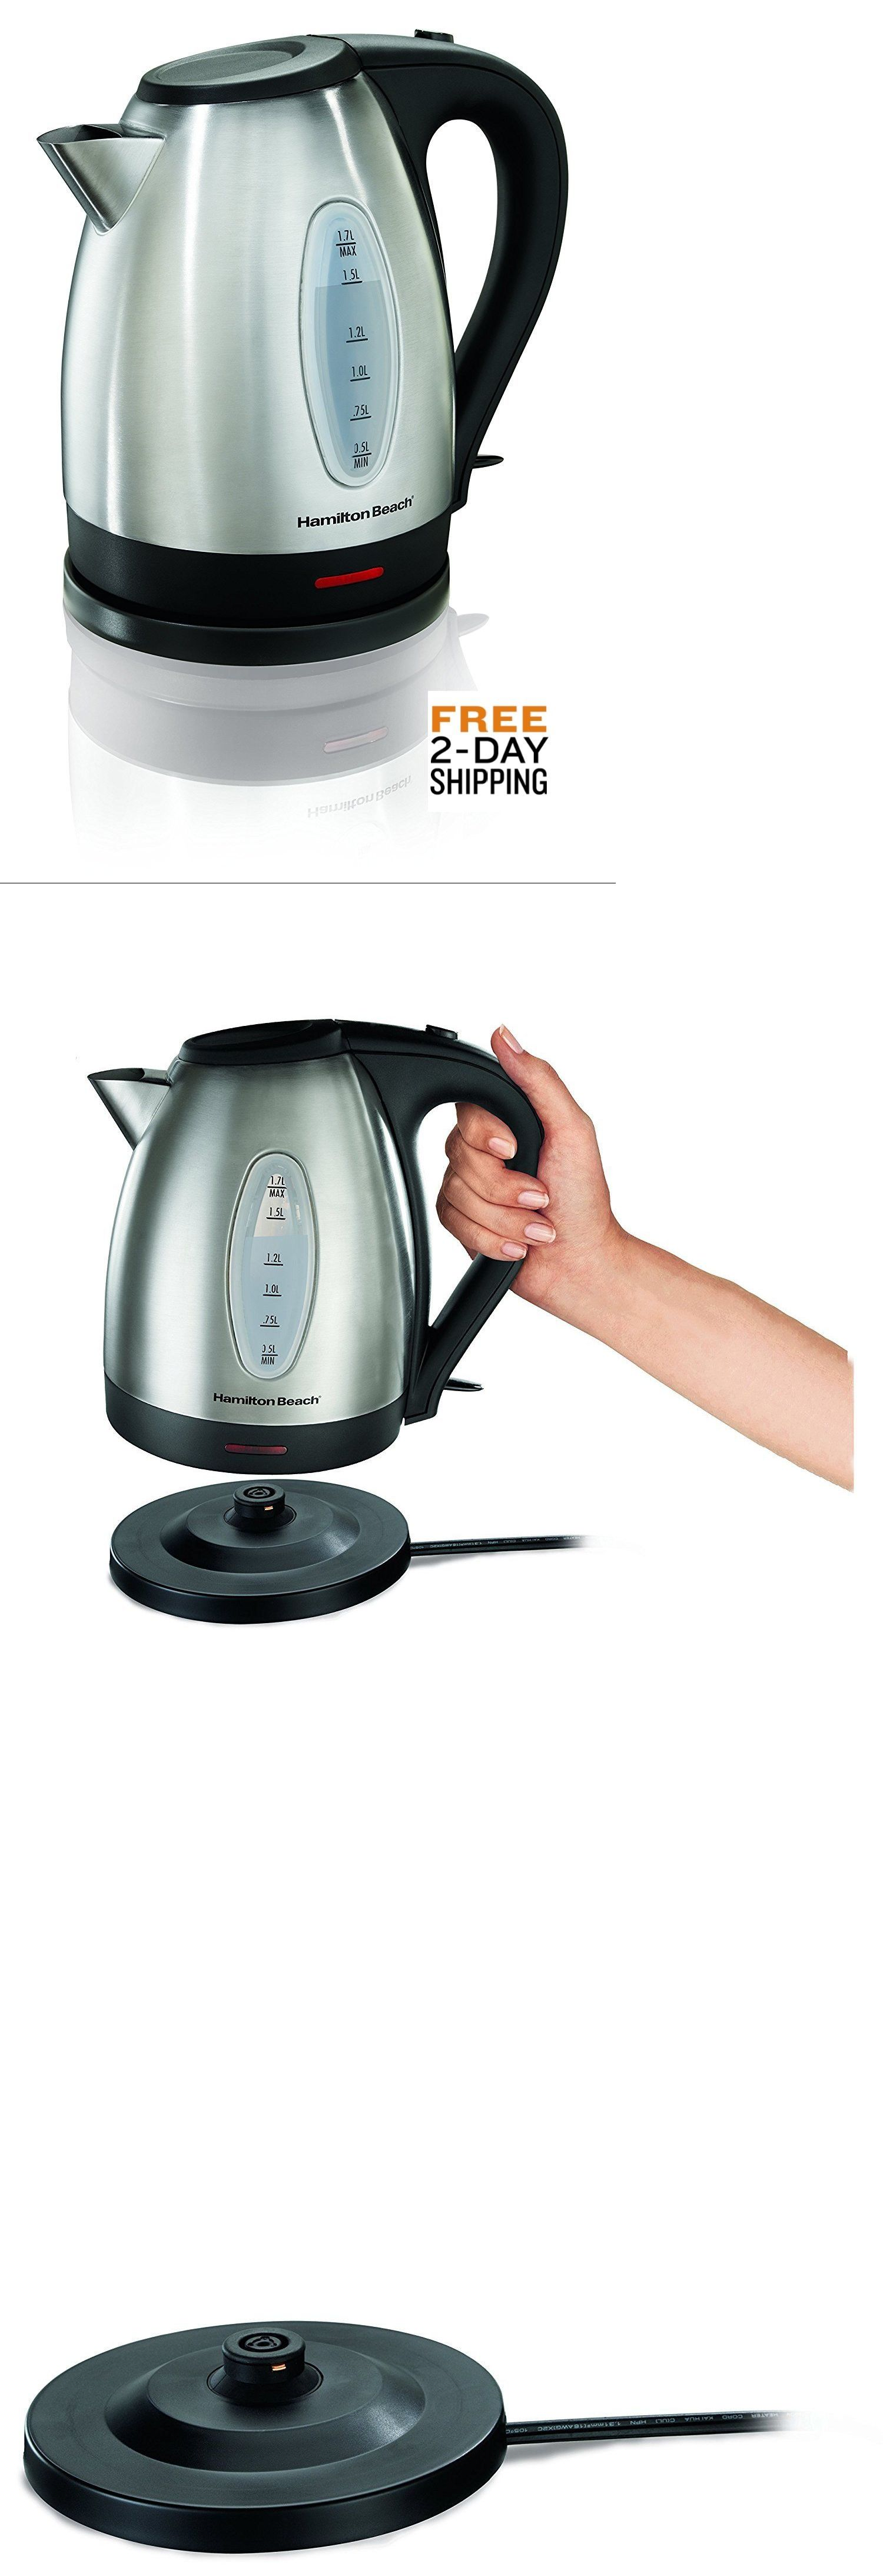 Hamilton Beach 40880 Stainless Steel Electric Kettle 1.7-Liter Silver FREE 2-DAY